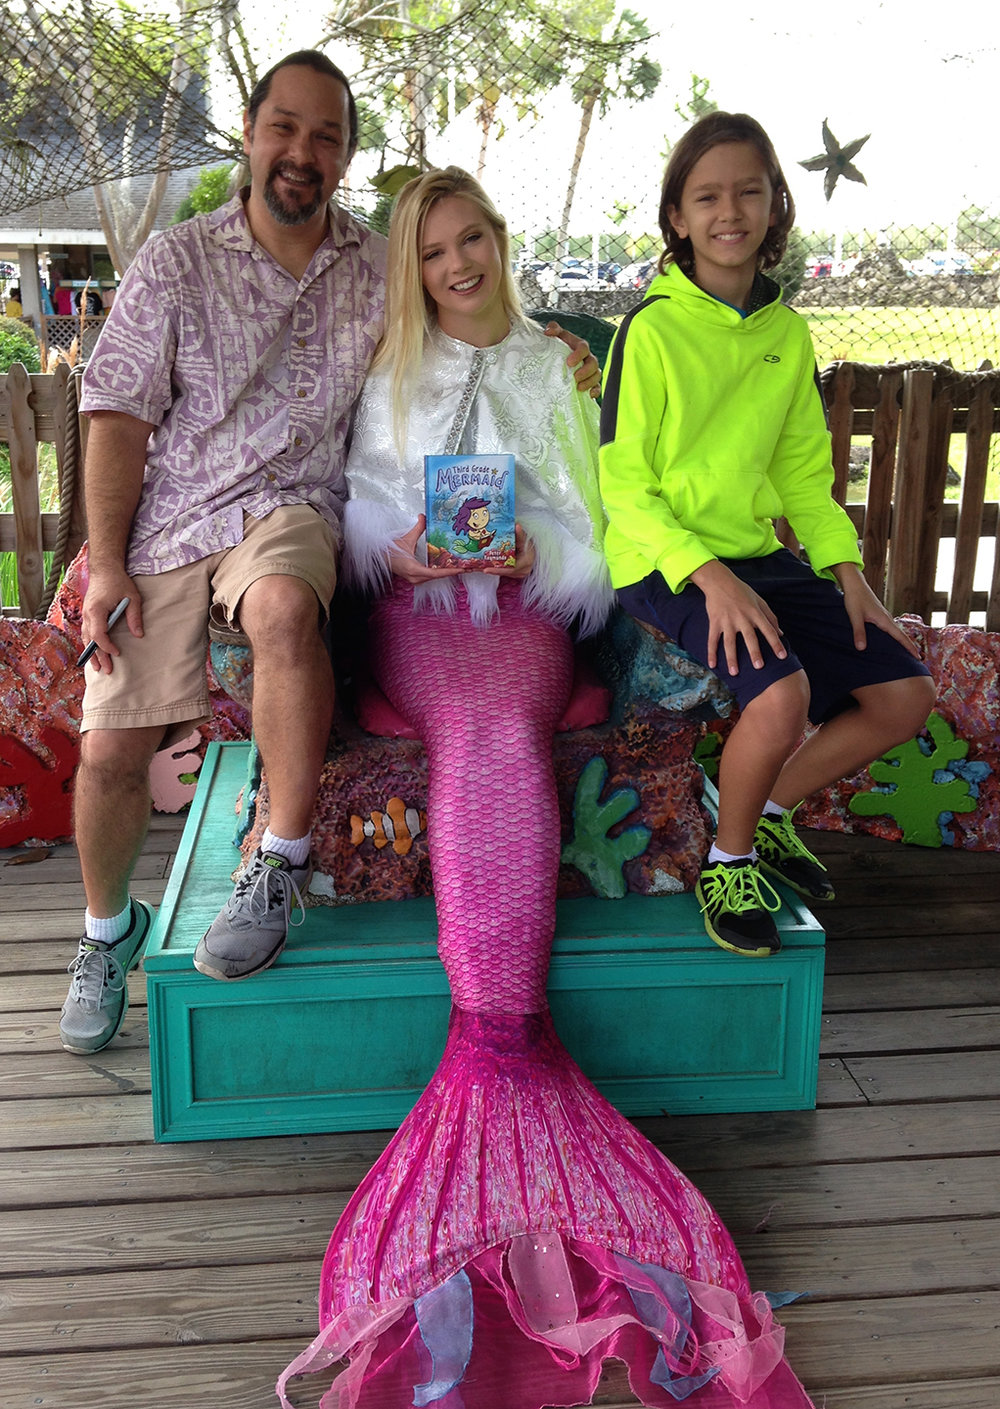 Me, Mermaid Brittany, and my son.